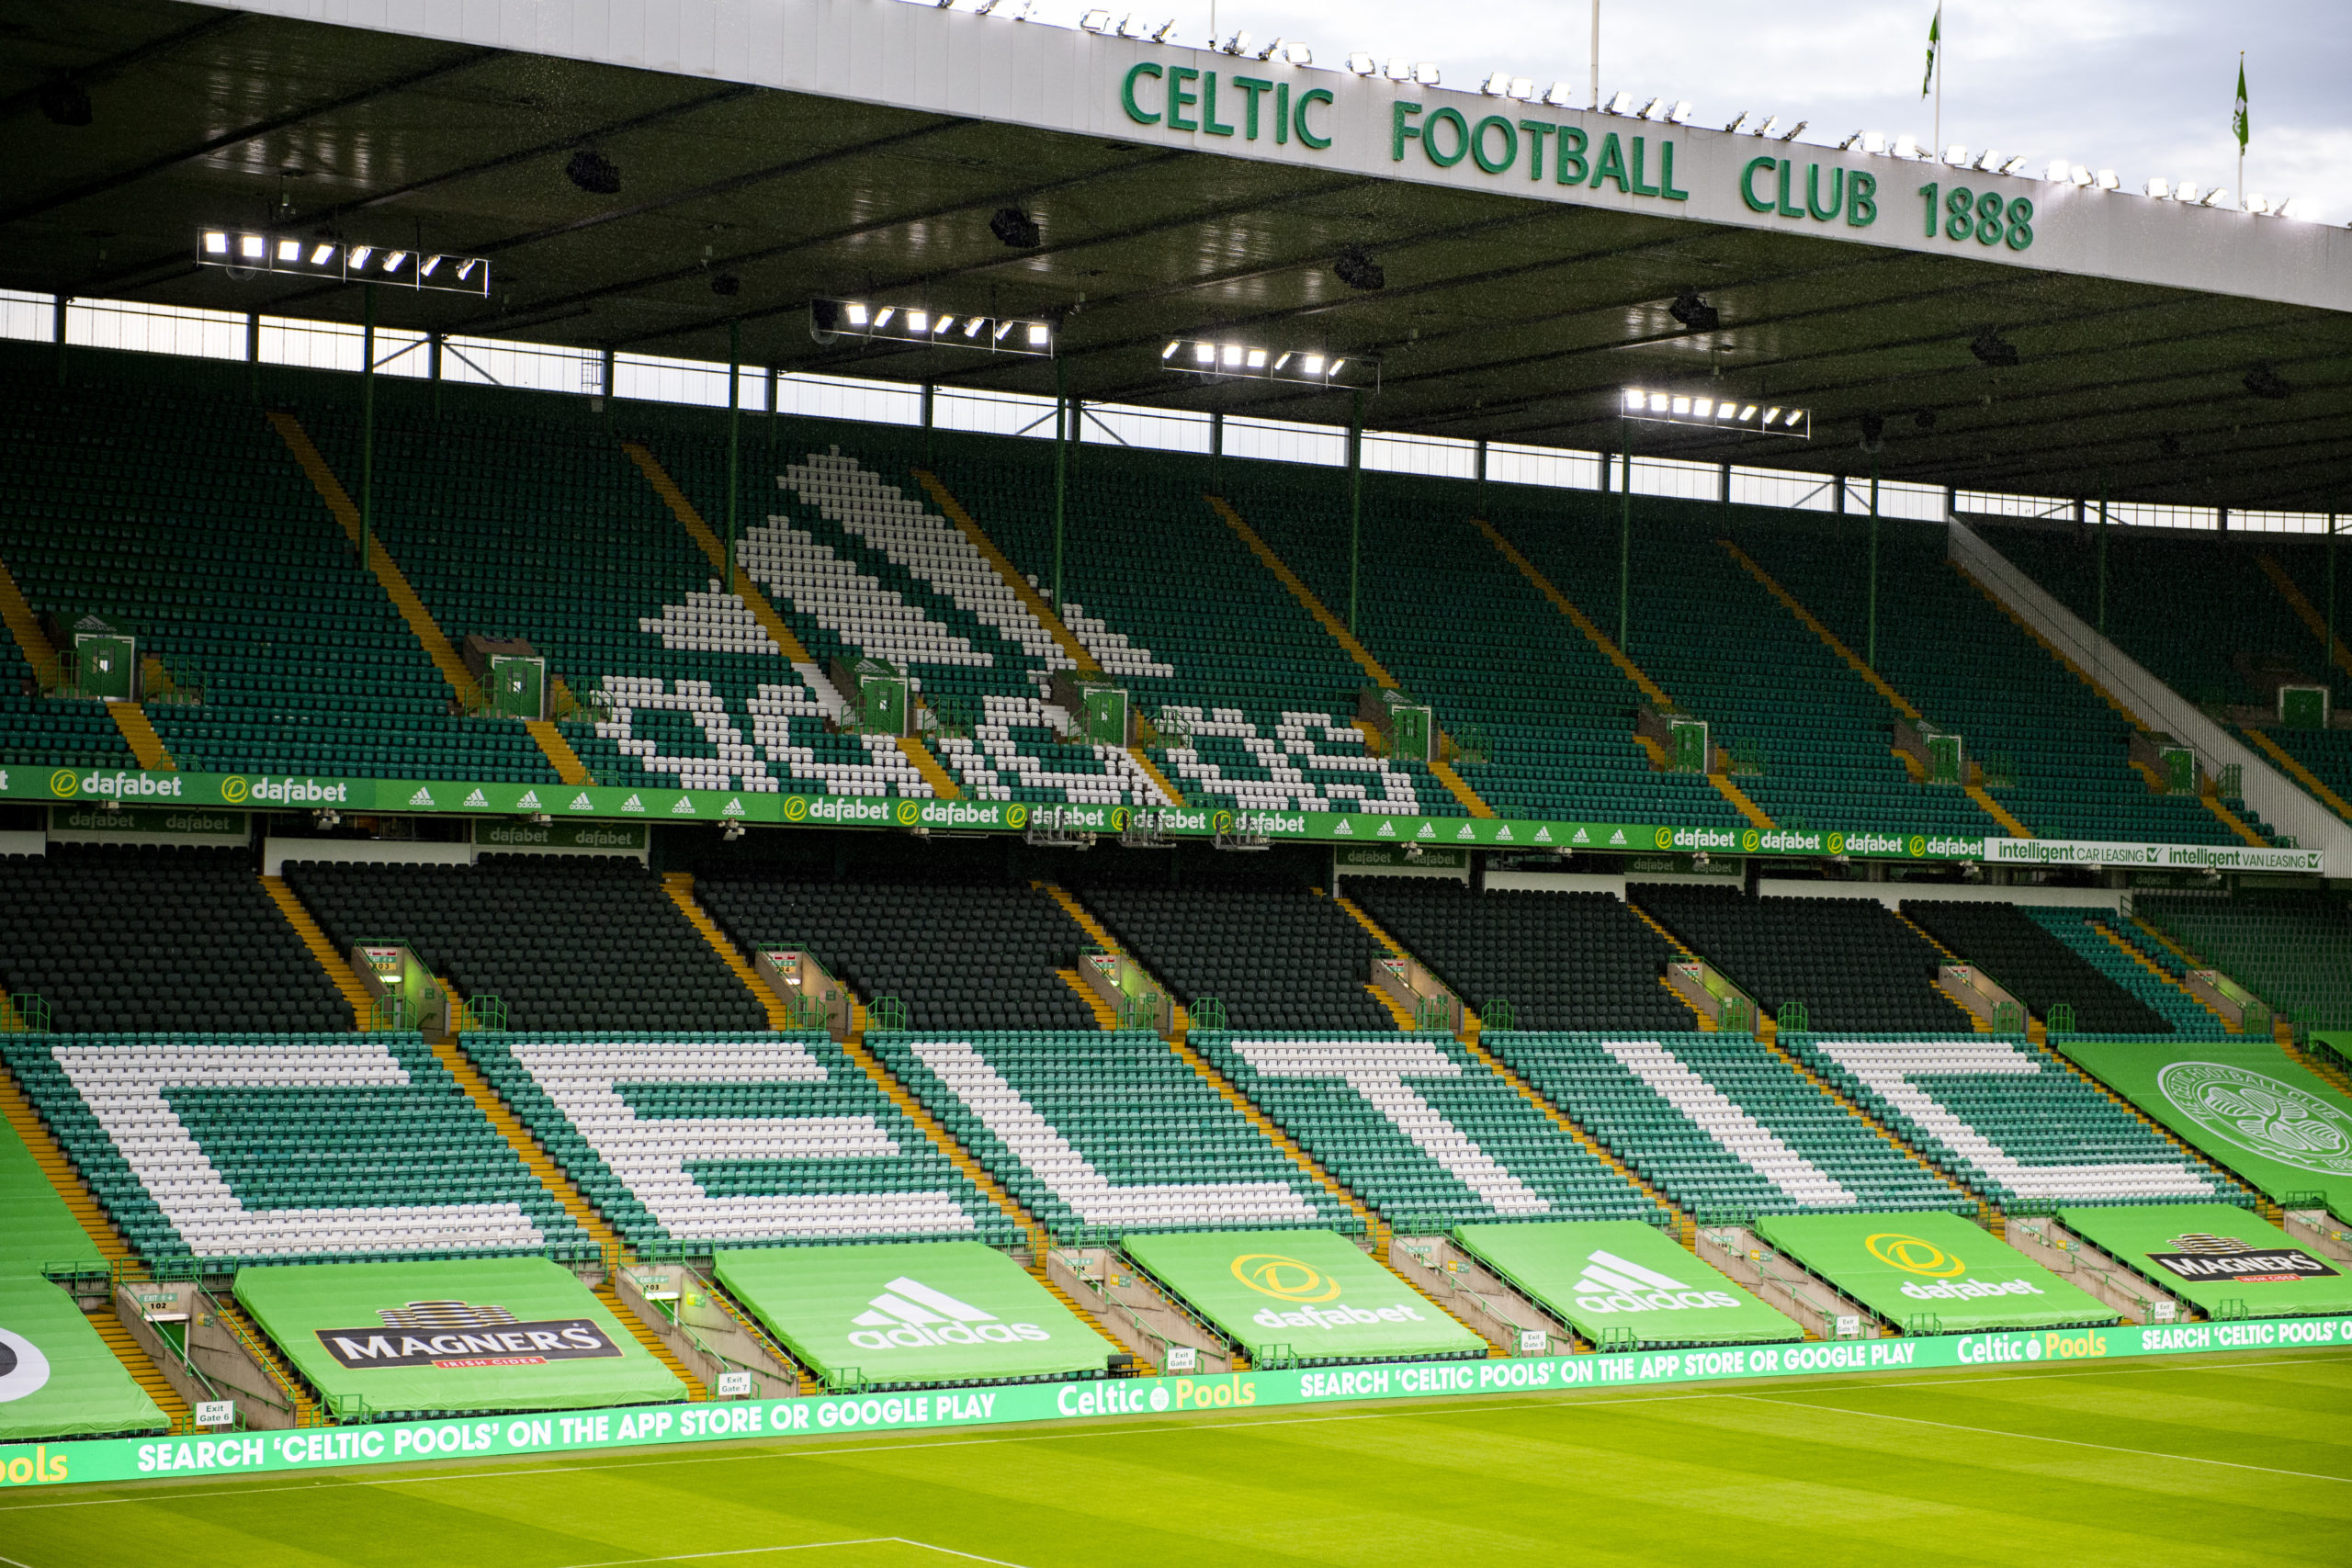 Celtic fans haven't been given access to Parkhead this season